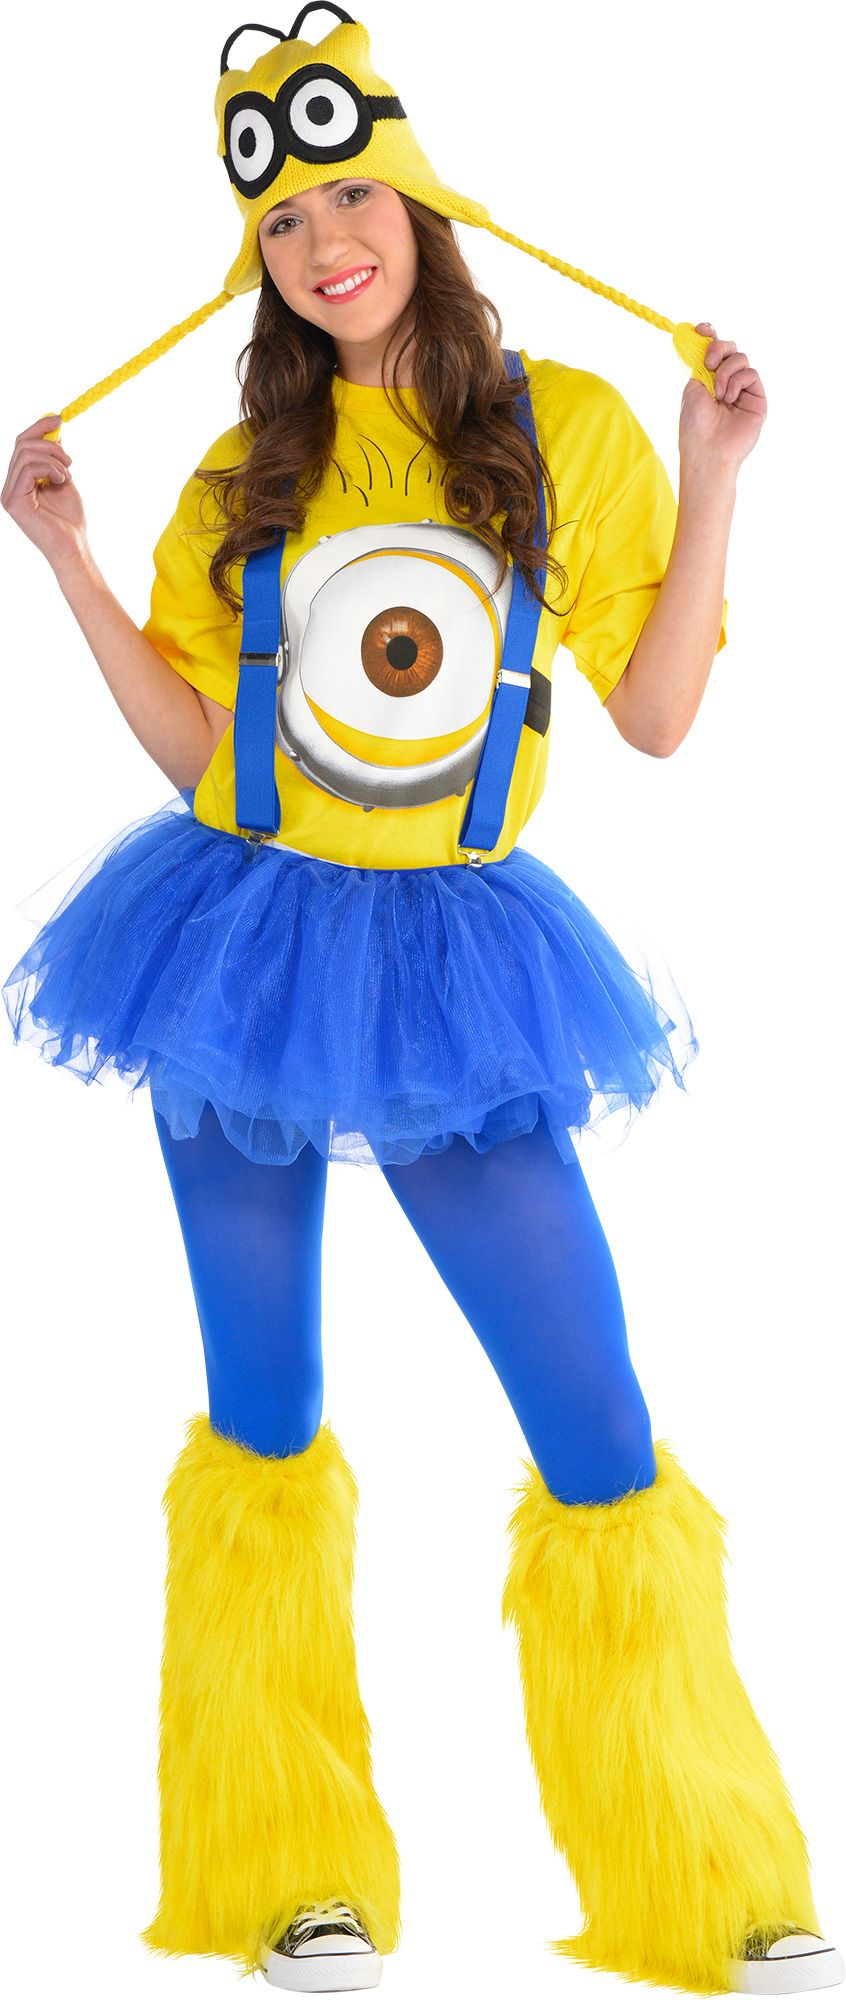 Make Your Costume - Womens Minion #3